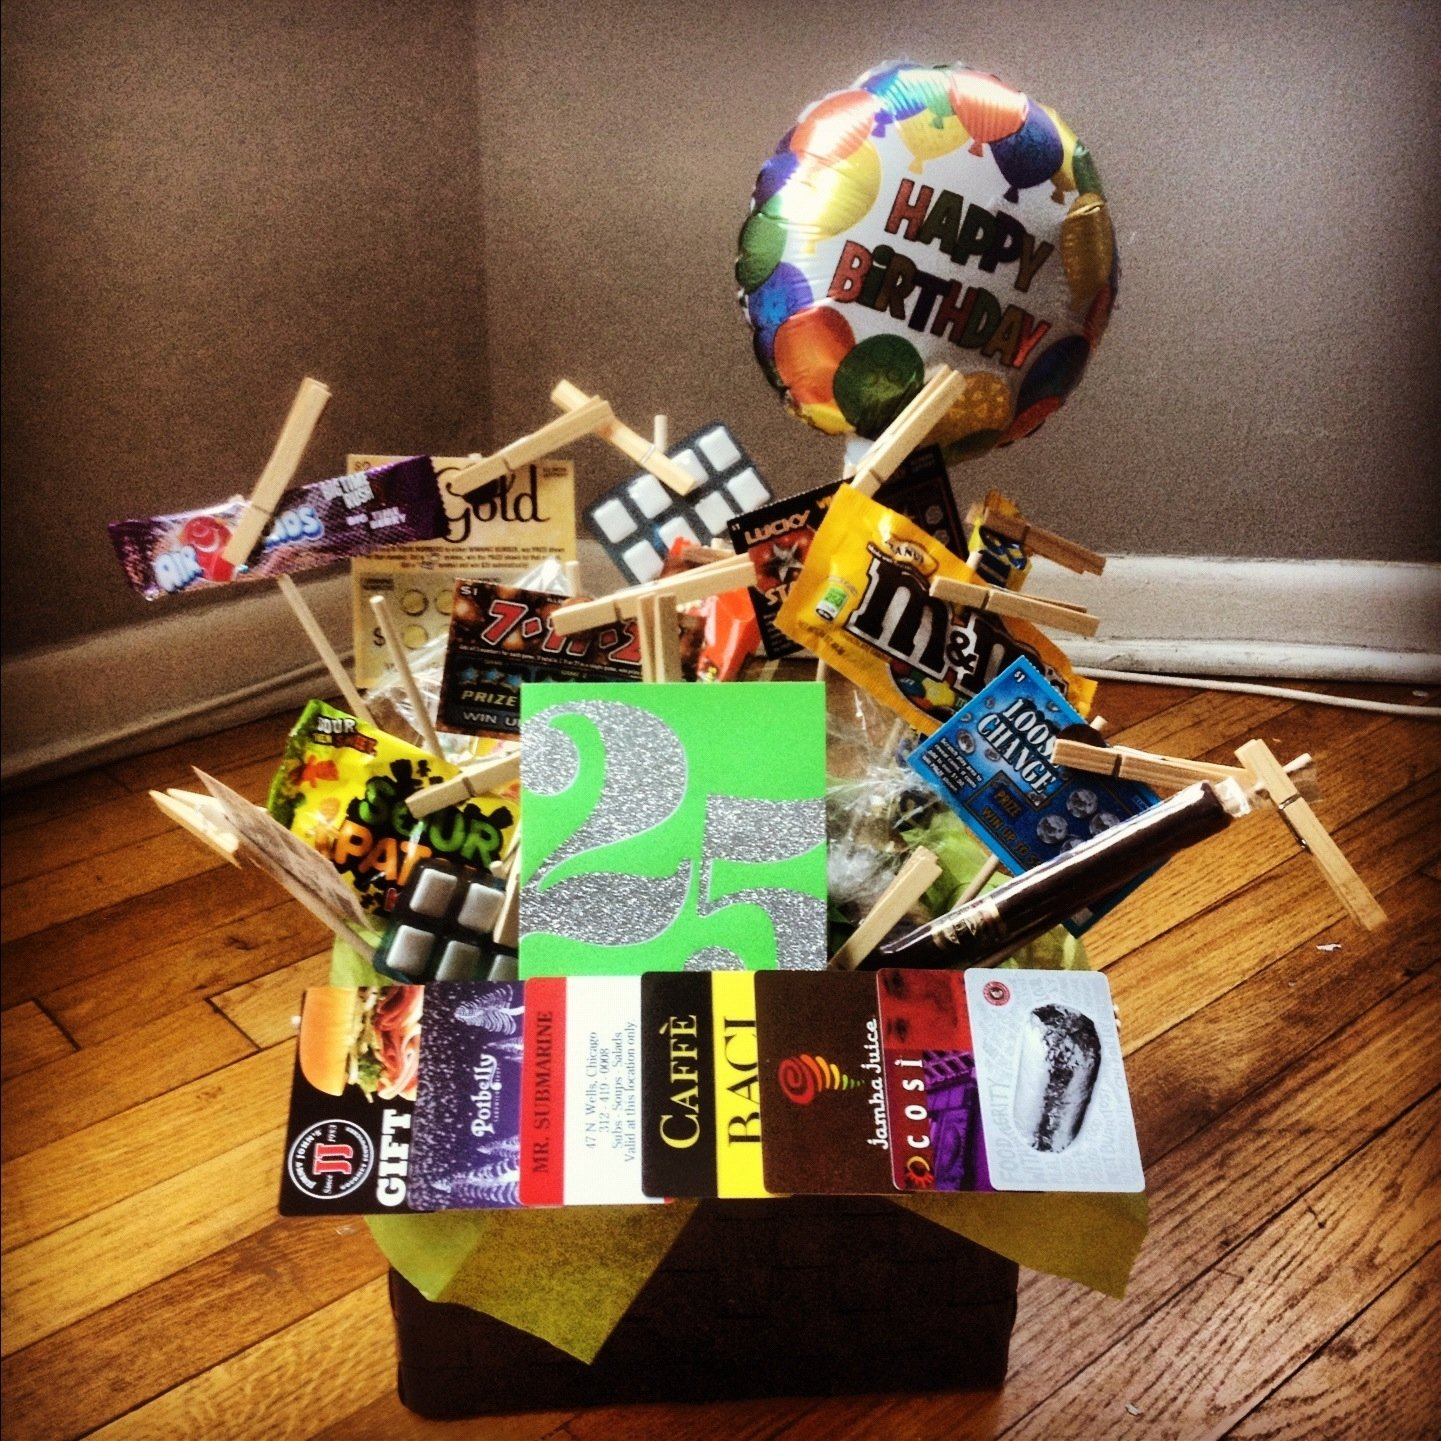 10 Most Recommended 25Th Birthday Ideas For Boyfriend 25 gifts gift basket i made for kyles 25th birthday kados 1 2020